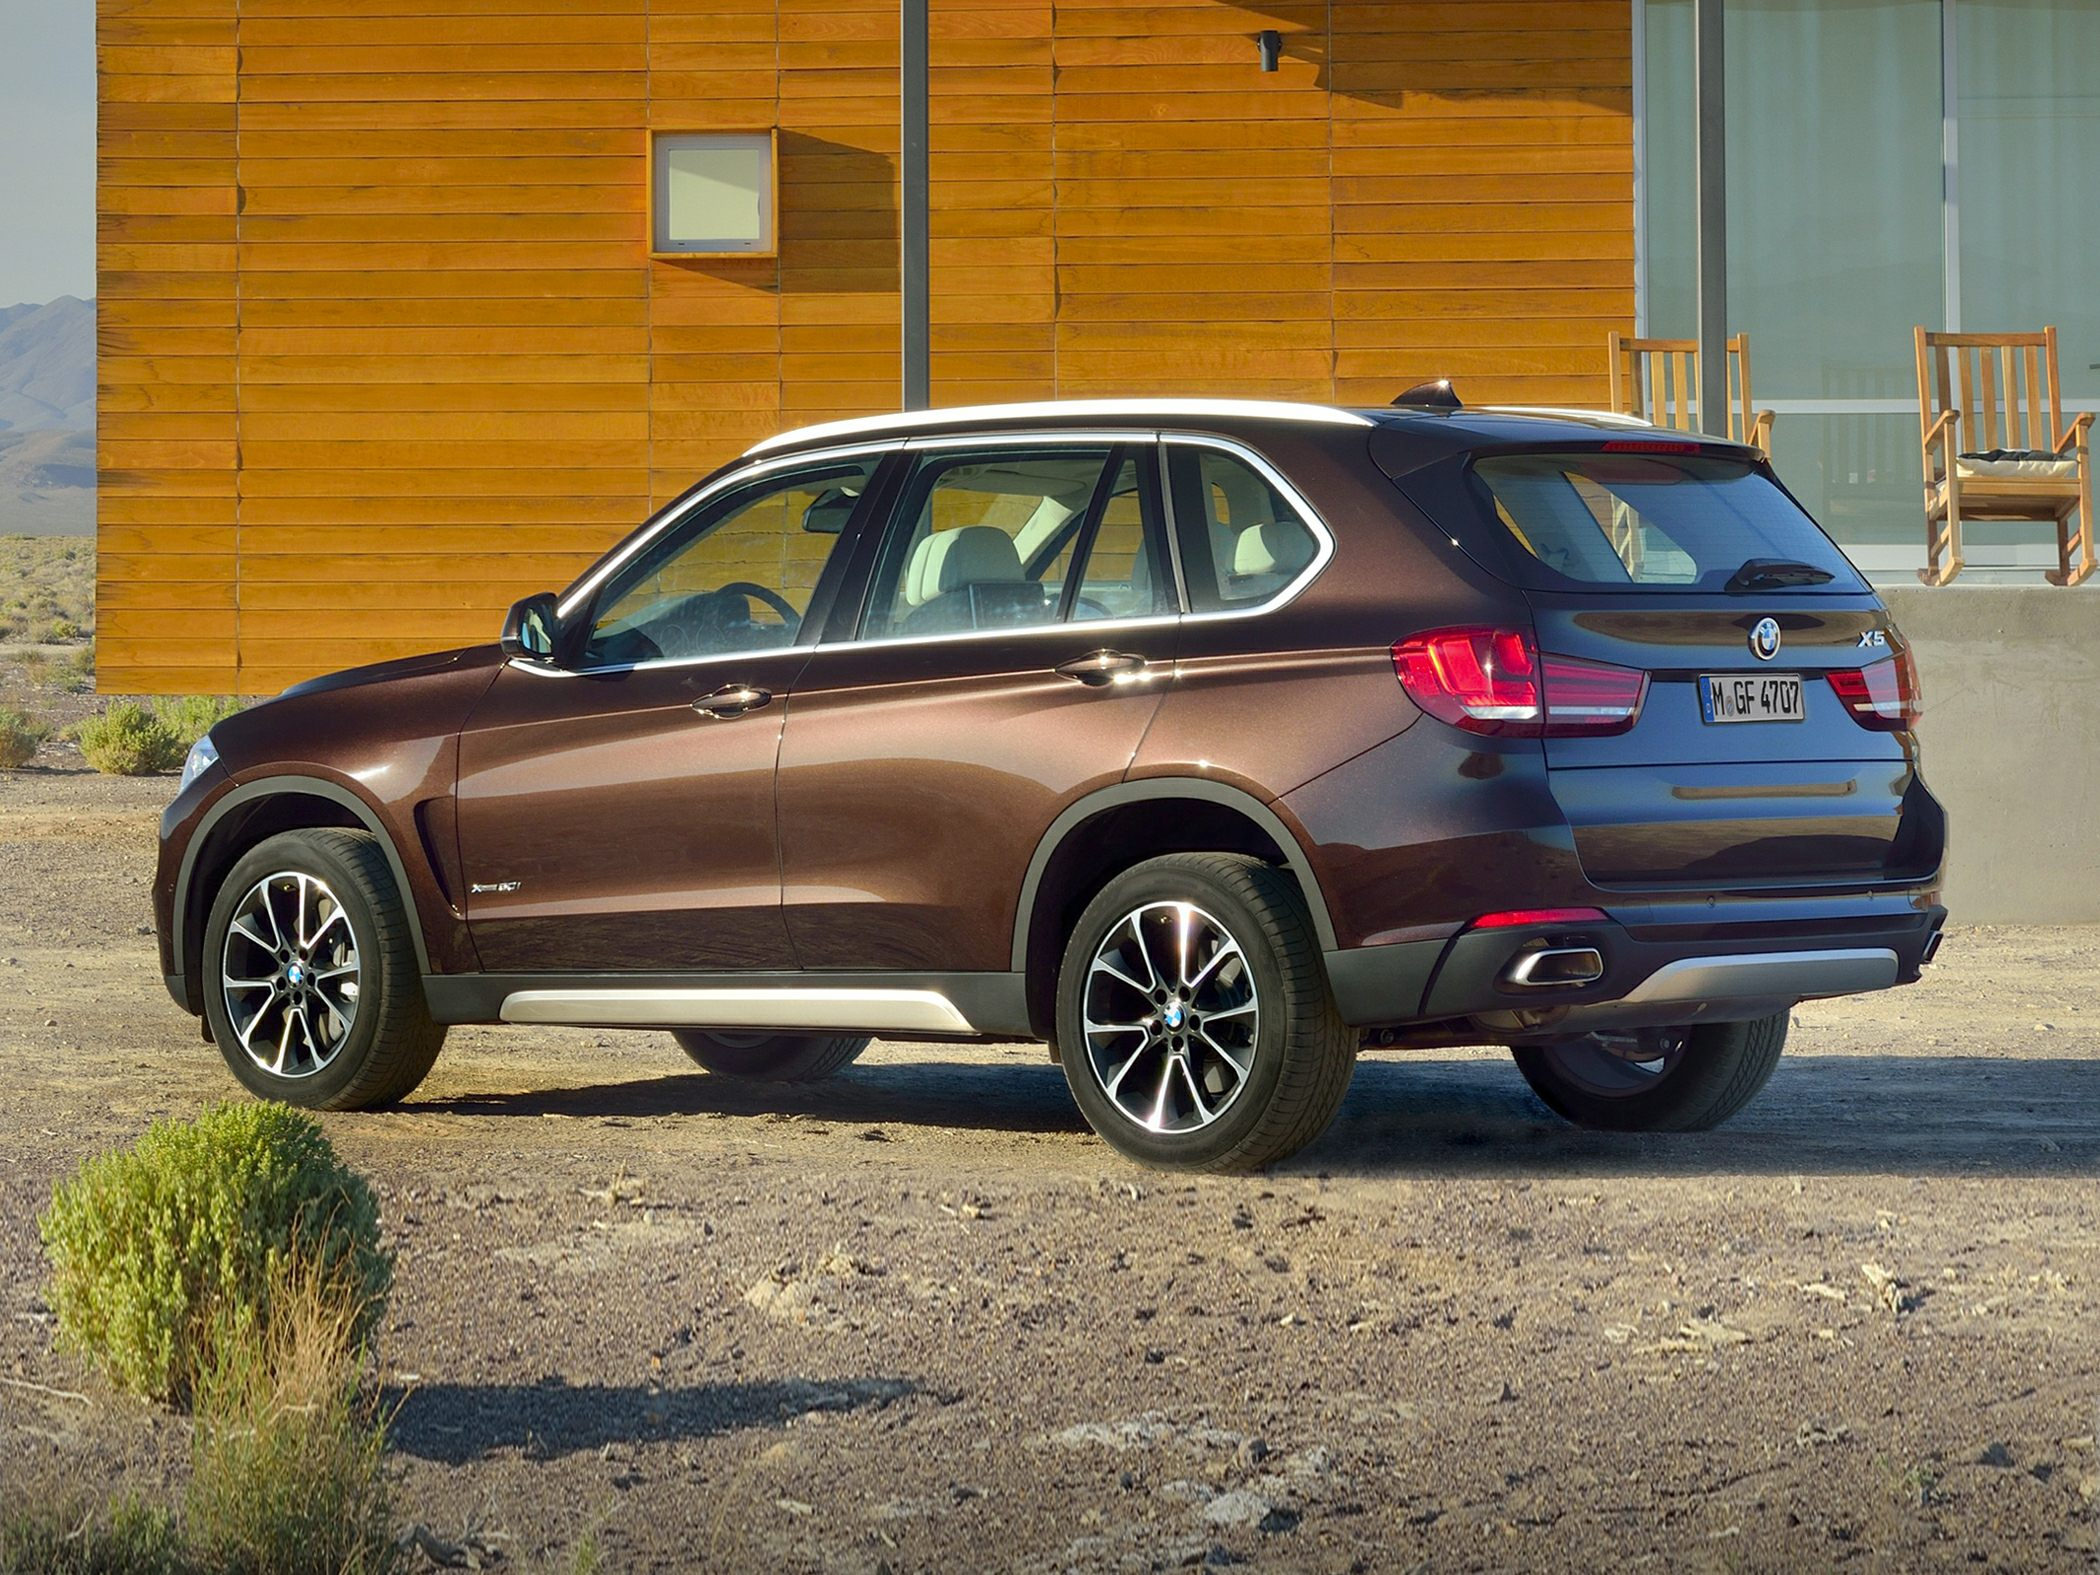 2017 bmw x5 deals prices incentives leases overview carsdirect. Black Bedroom Furniture Sets. Home Design Ideas